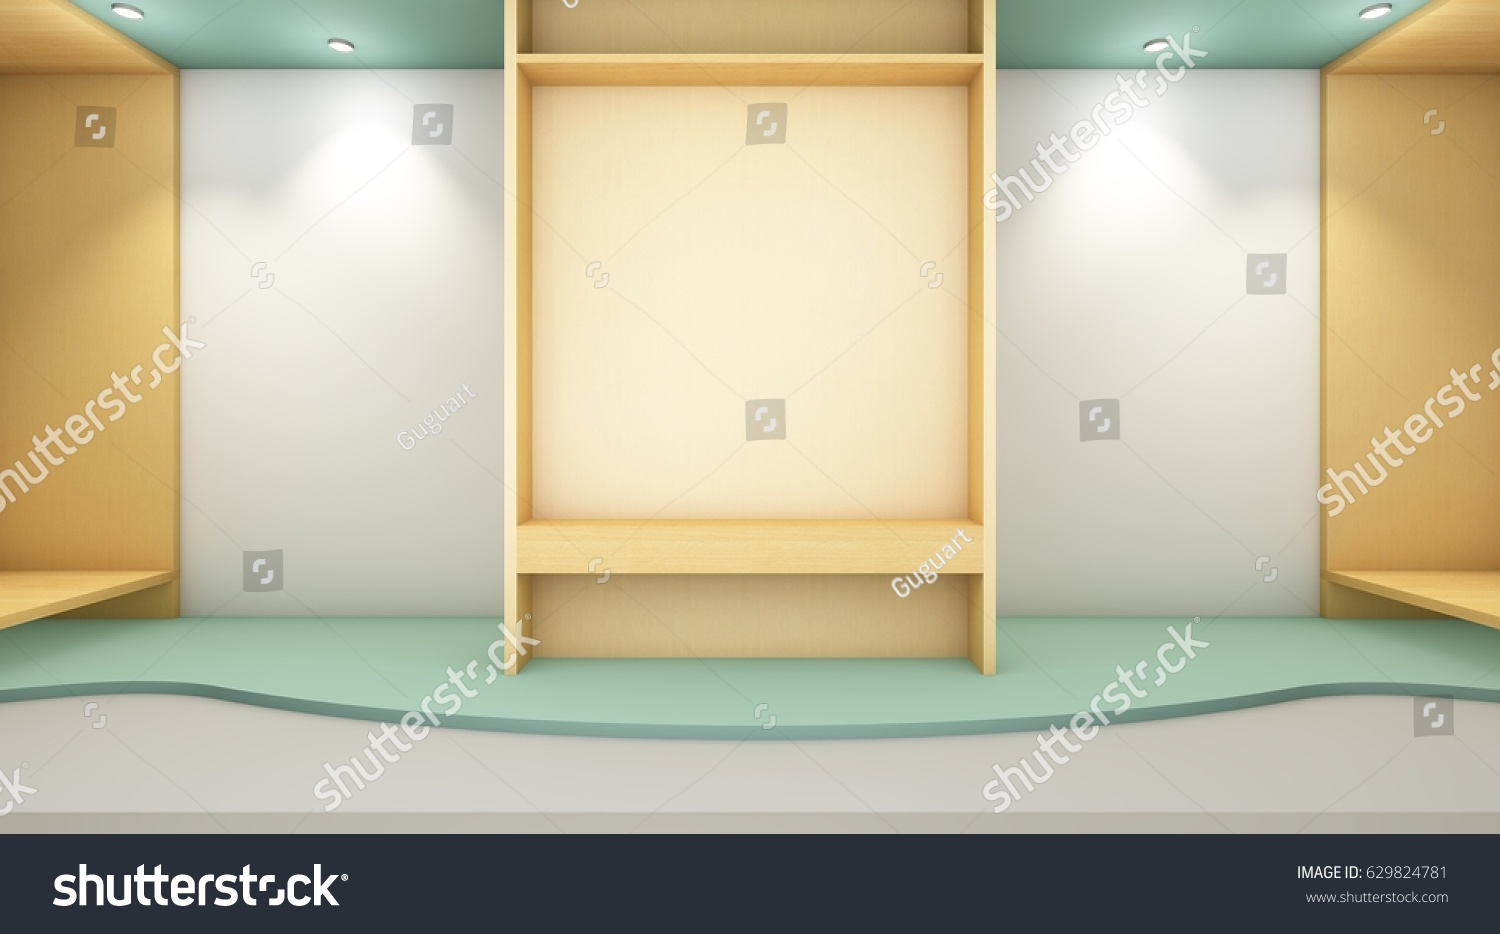 Awe Inspiring Royalty Free Stock Illustration Of Empty Modern Room Download Free Architecture Designs Grimeyleaguecom